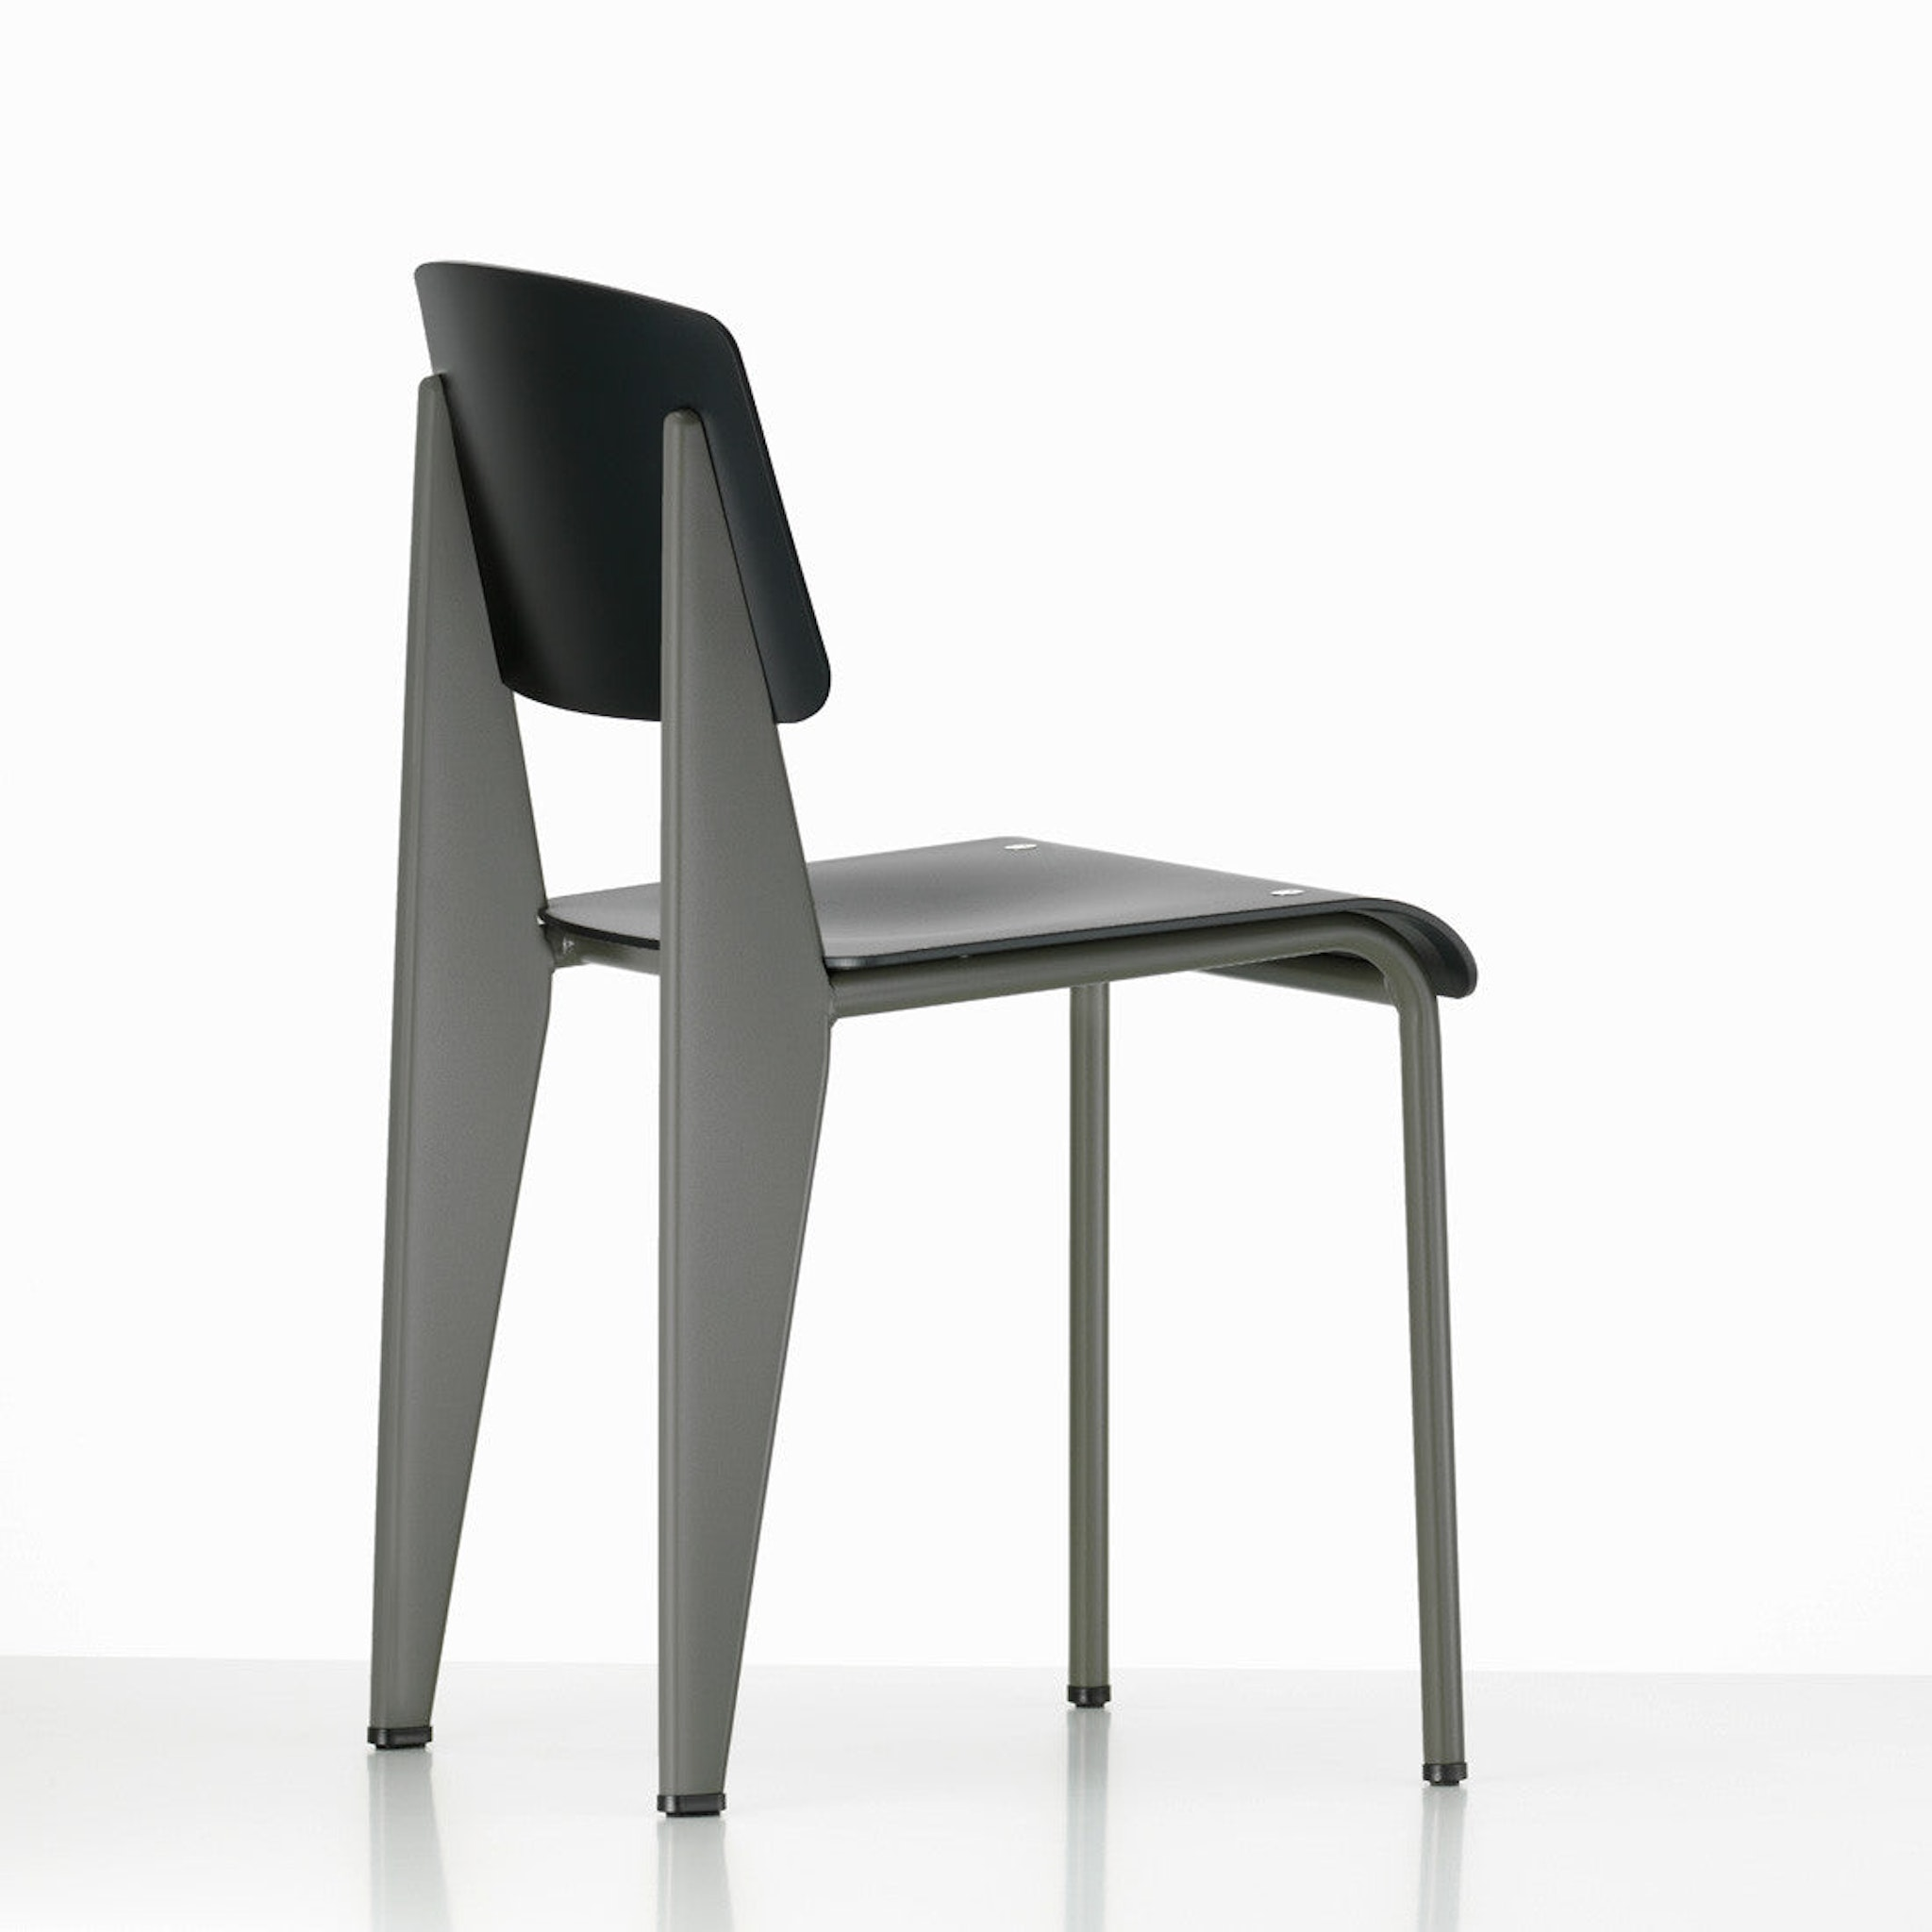 Standard SP chair by Jean Prouve, Vitra